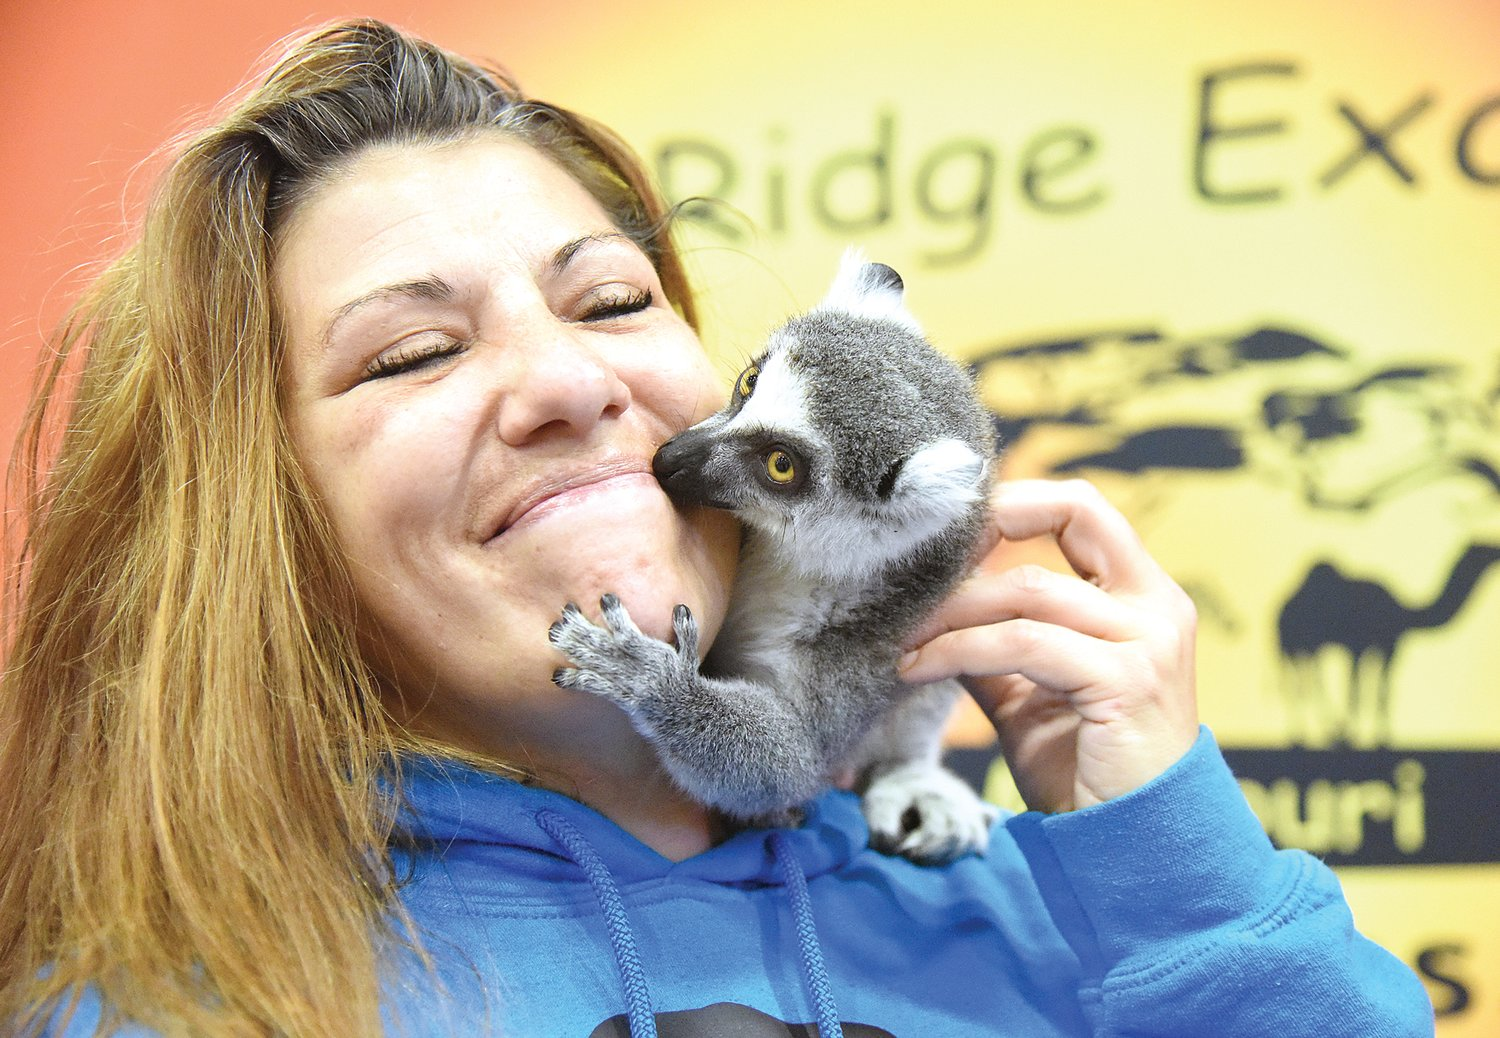 "During the Home and Garden Show Saturday, Jen Colantino, of Sedalia, gets a kiss from a lemur at vendor Thorni Ridge Exotics' booth. ""Oh, he's so sweet,"" Colantino said of the affectionate primate."